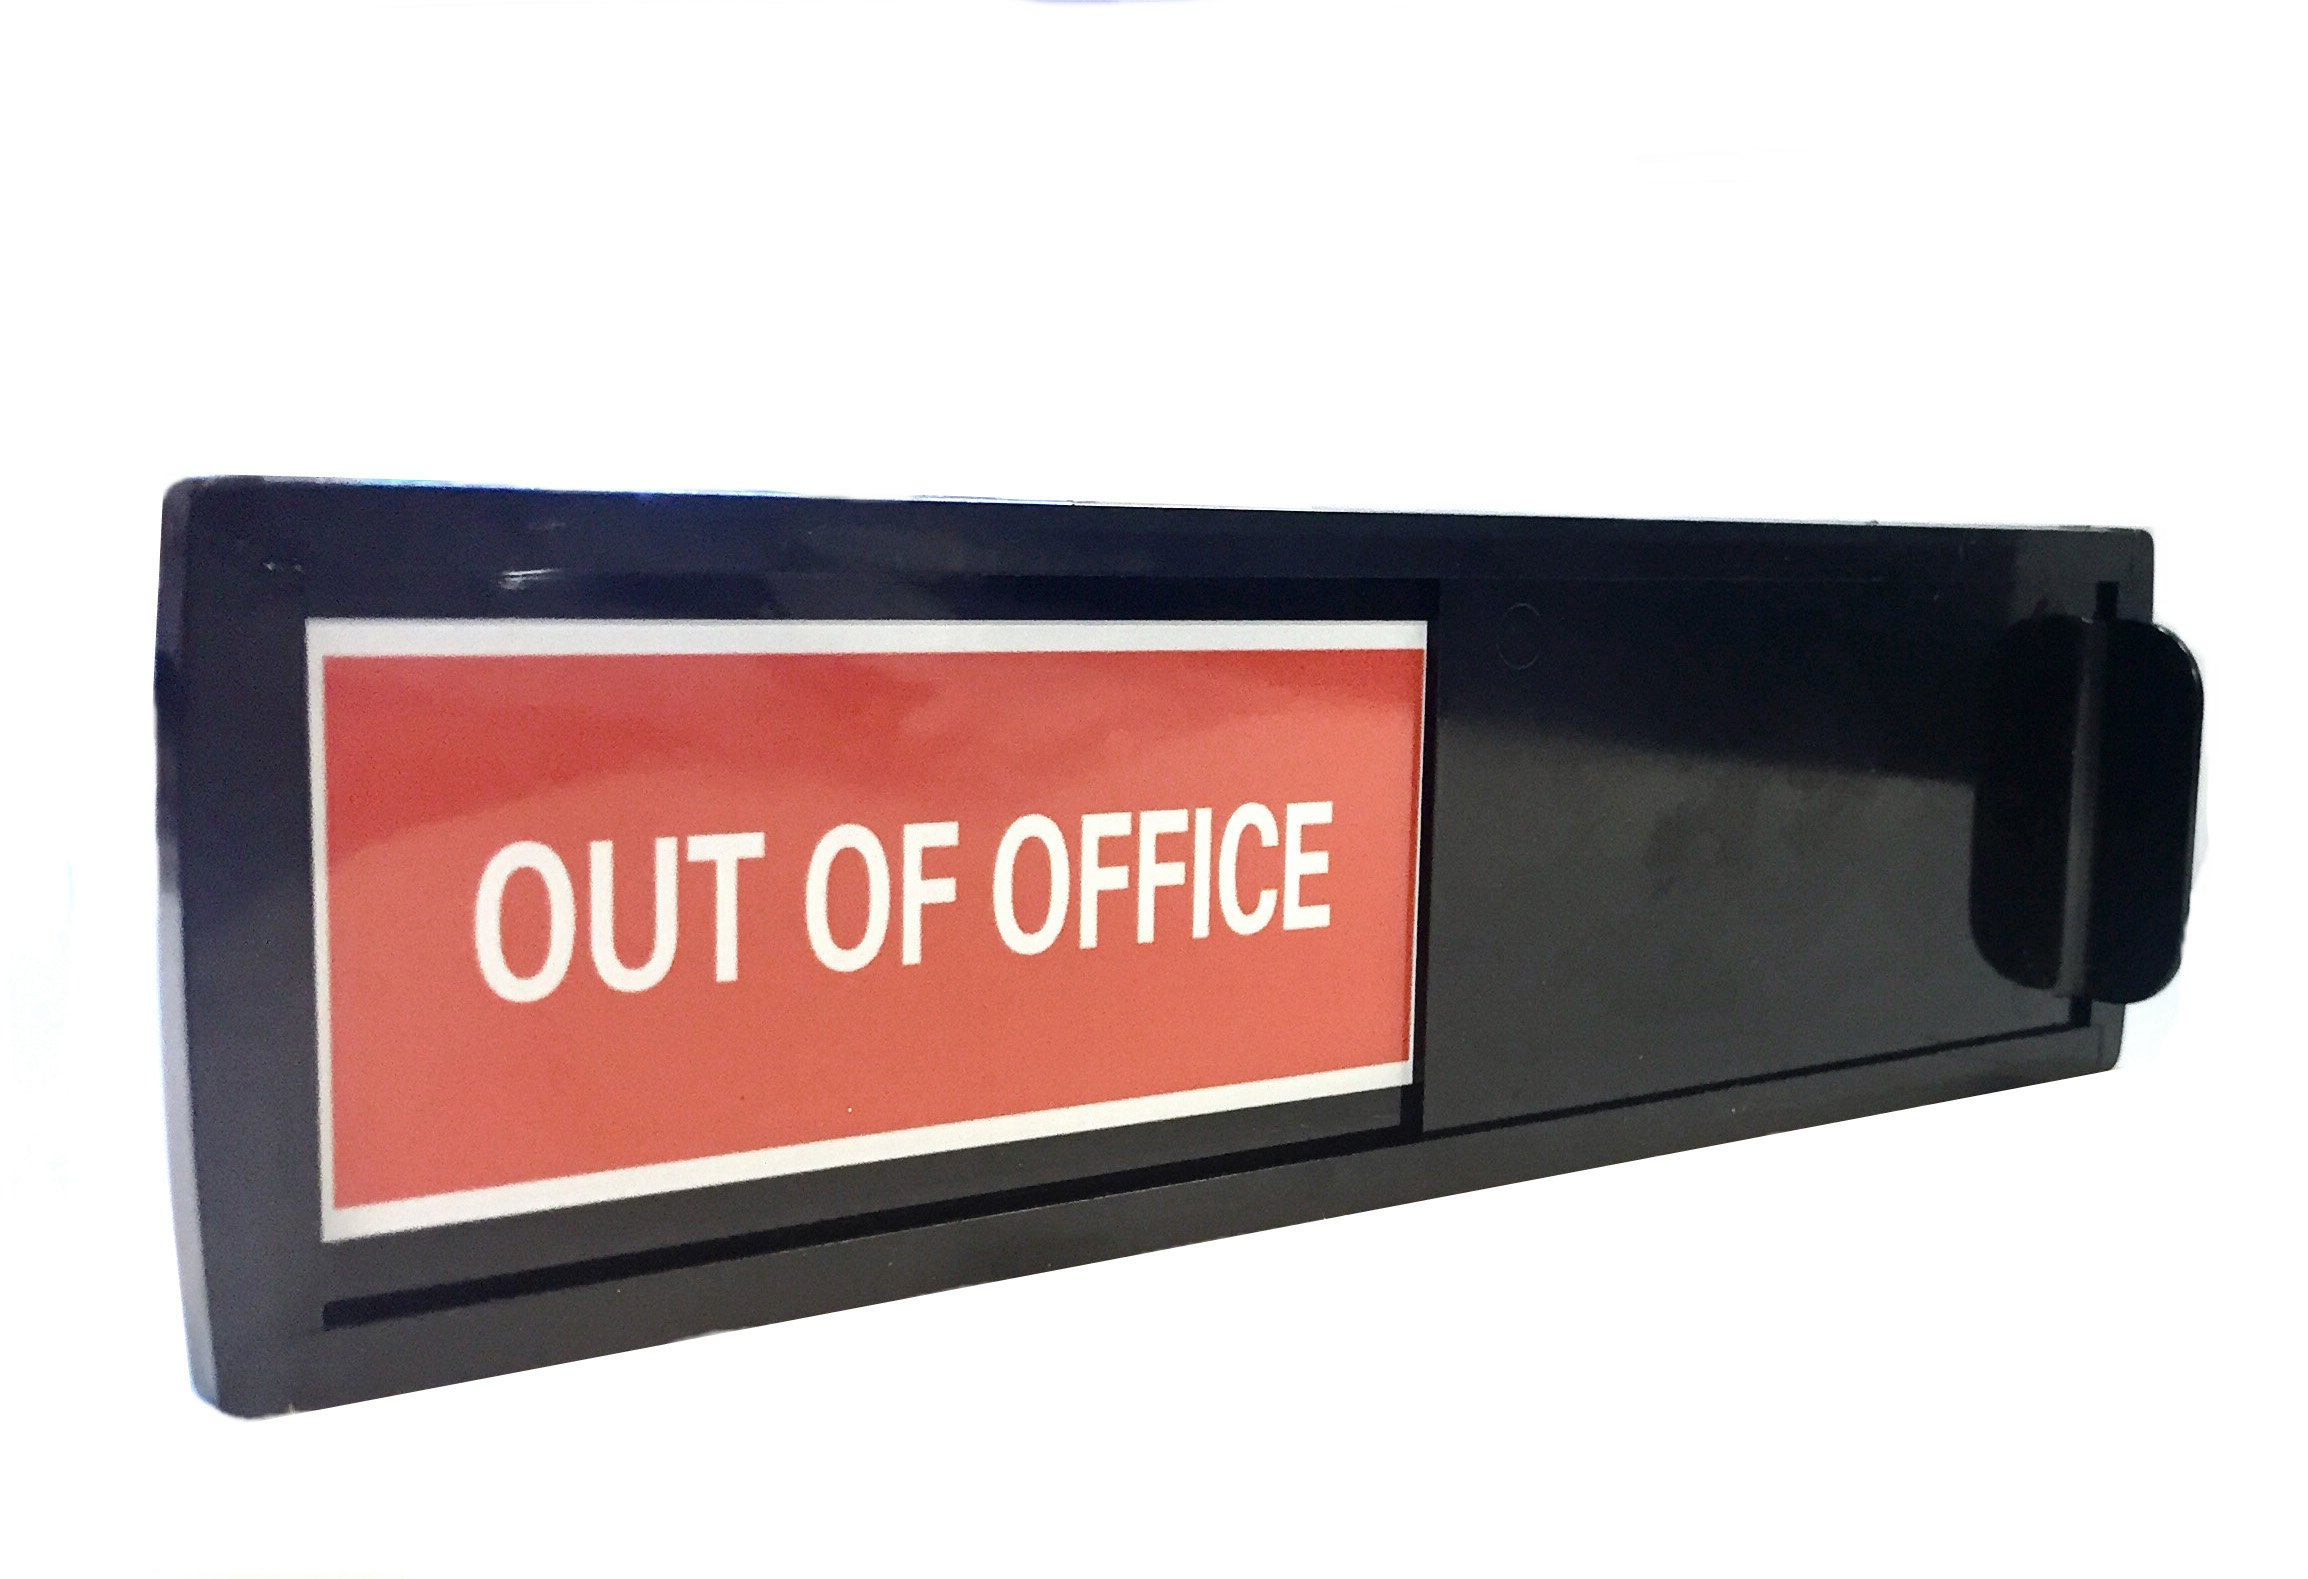 Out of Office Sign | for Businesses, Offices and Home use | Works Like a do not Disturb Sign | Shutter Changes When You Push IT | for Home and Offices (Welcome Signs) (Black)